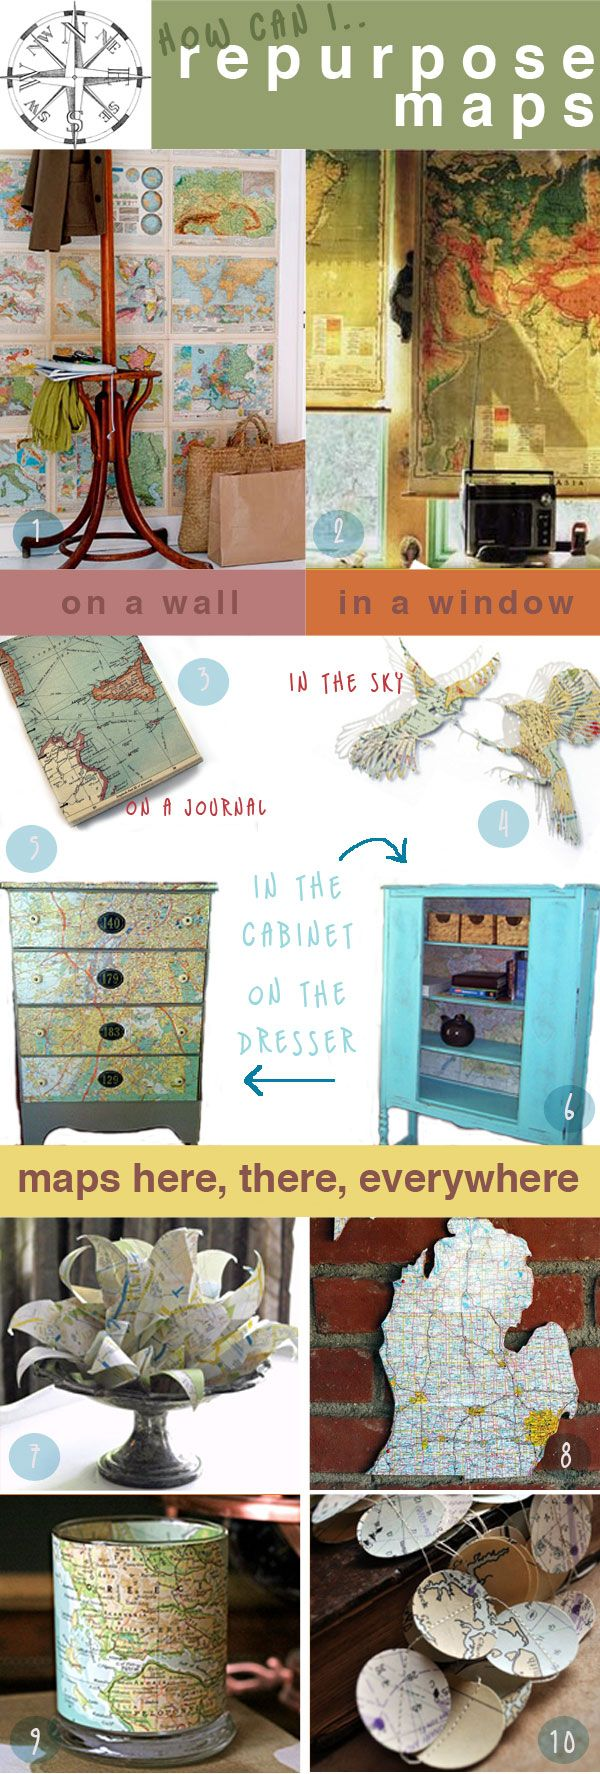 Repurposing (more) Map ideas~ great stuff!Crafts Ideas, Travel Inspiration Wedding, Maps Recycle, Old Maps, Repurpoed Maps, Crafts Paper Drawers, Globes Crafts, Maps Ideas, Crafts Maps